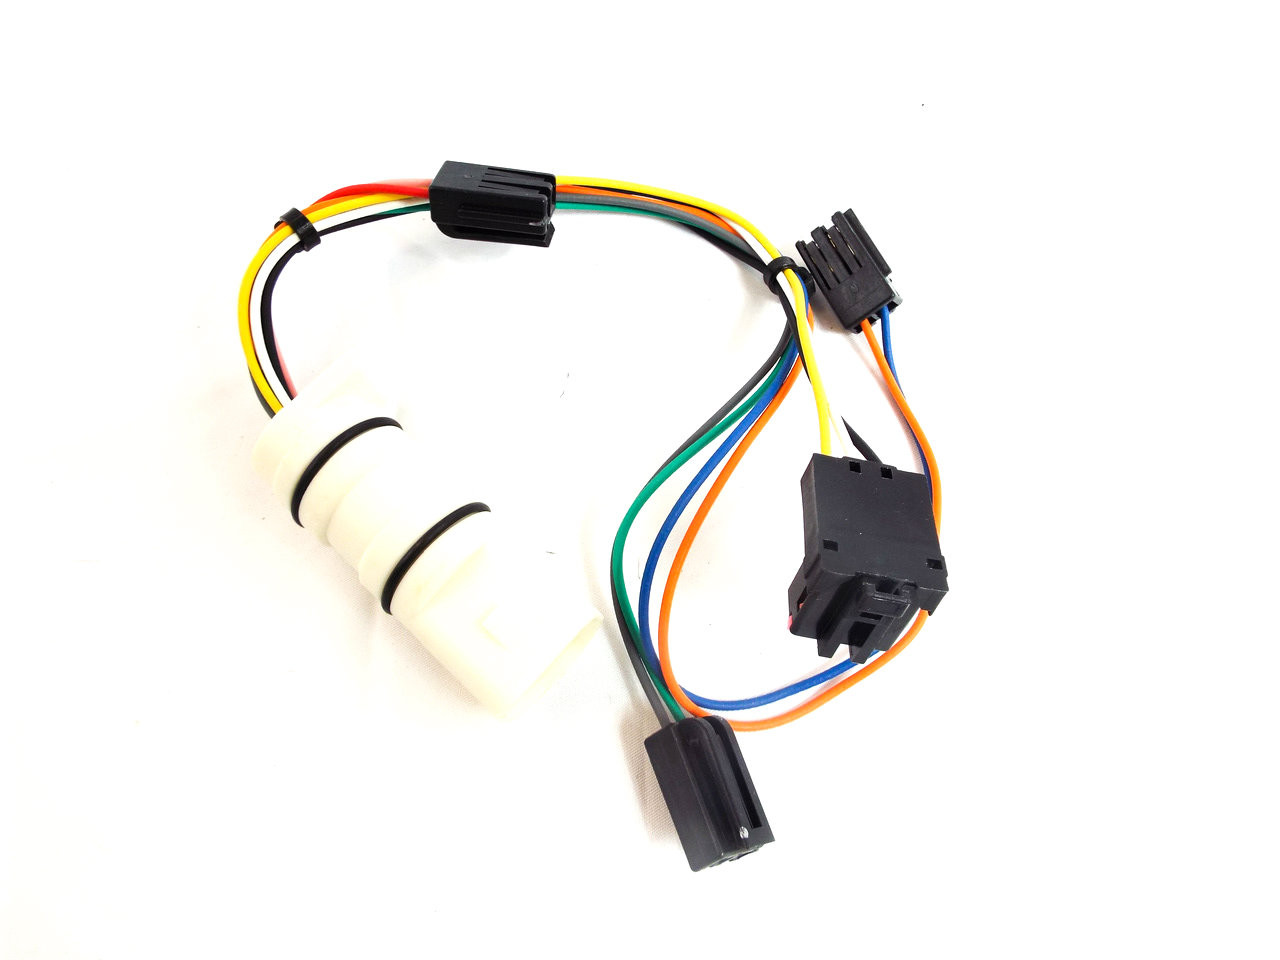 Ford AODE/4R70W Internal Wiring Harness w/ Case Connector F2VY-7G276-AGlobal Transmission Parts